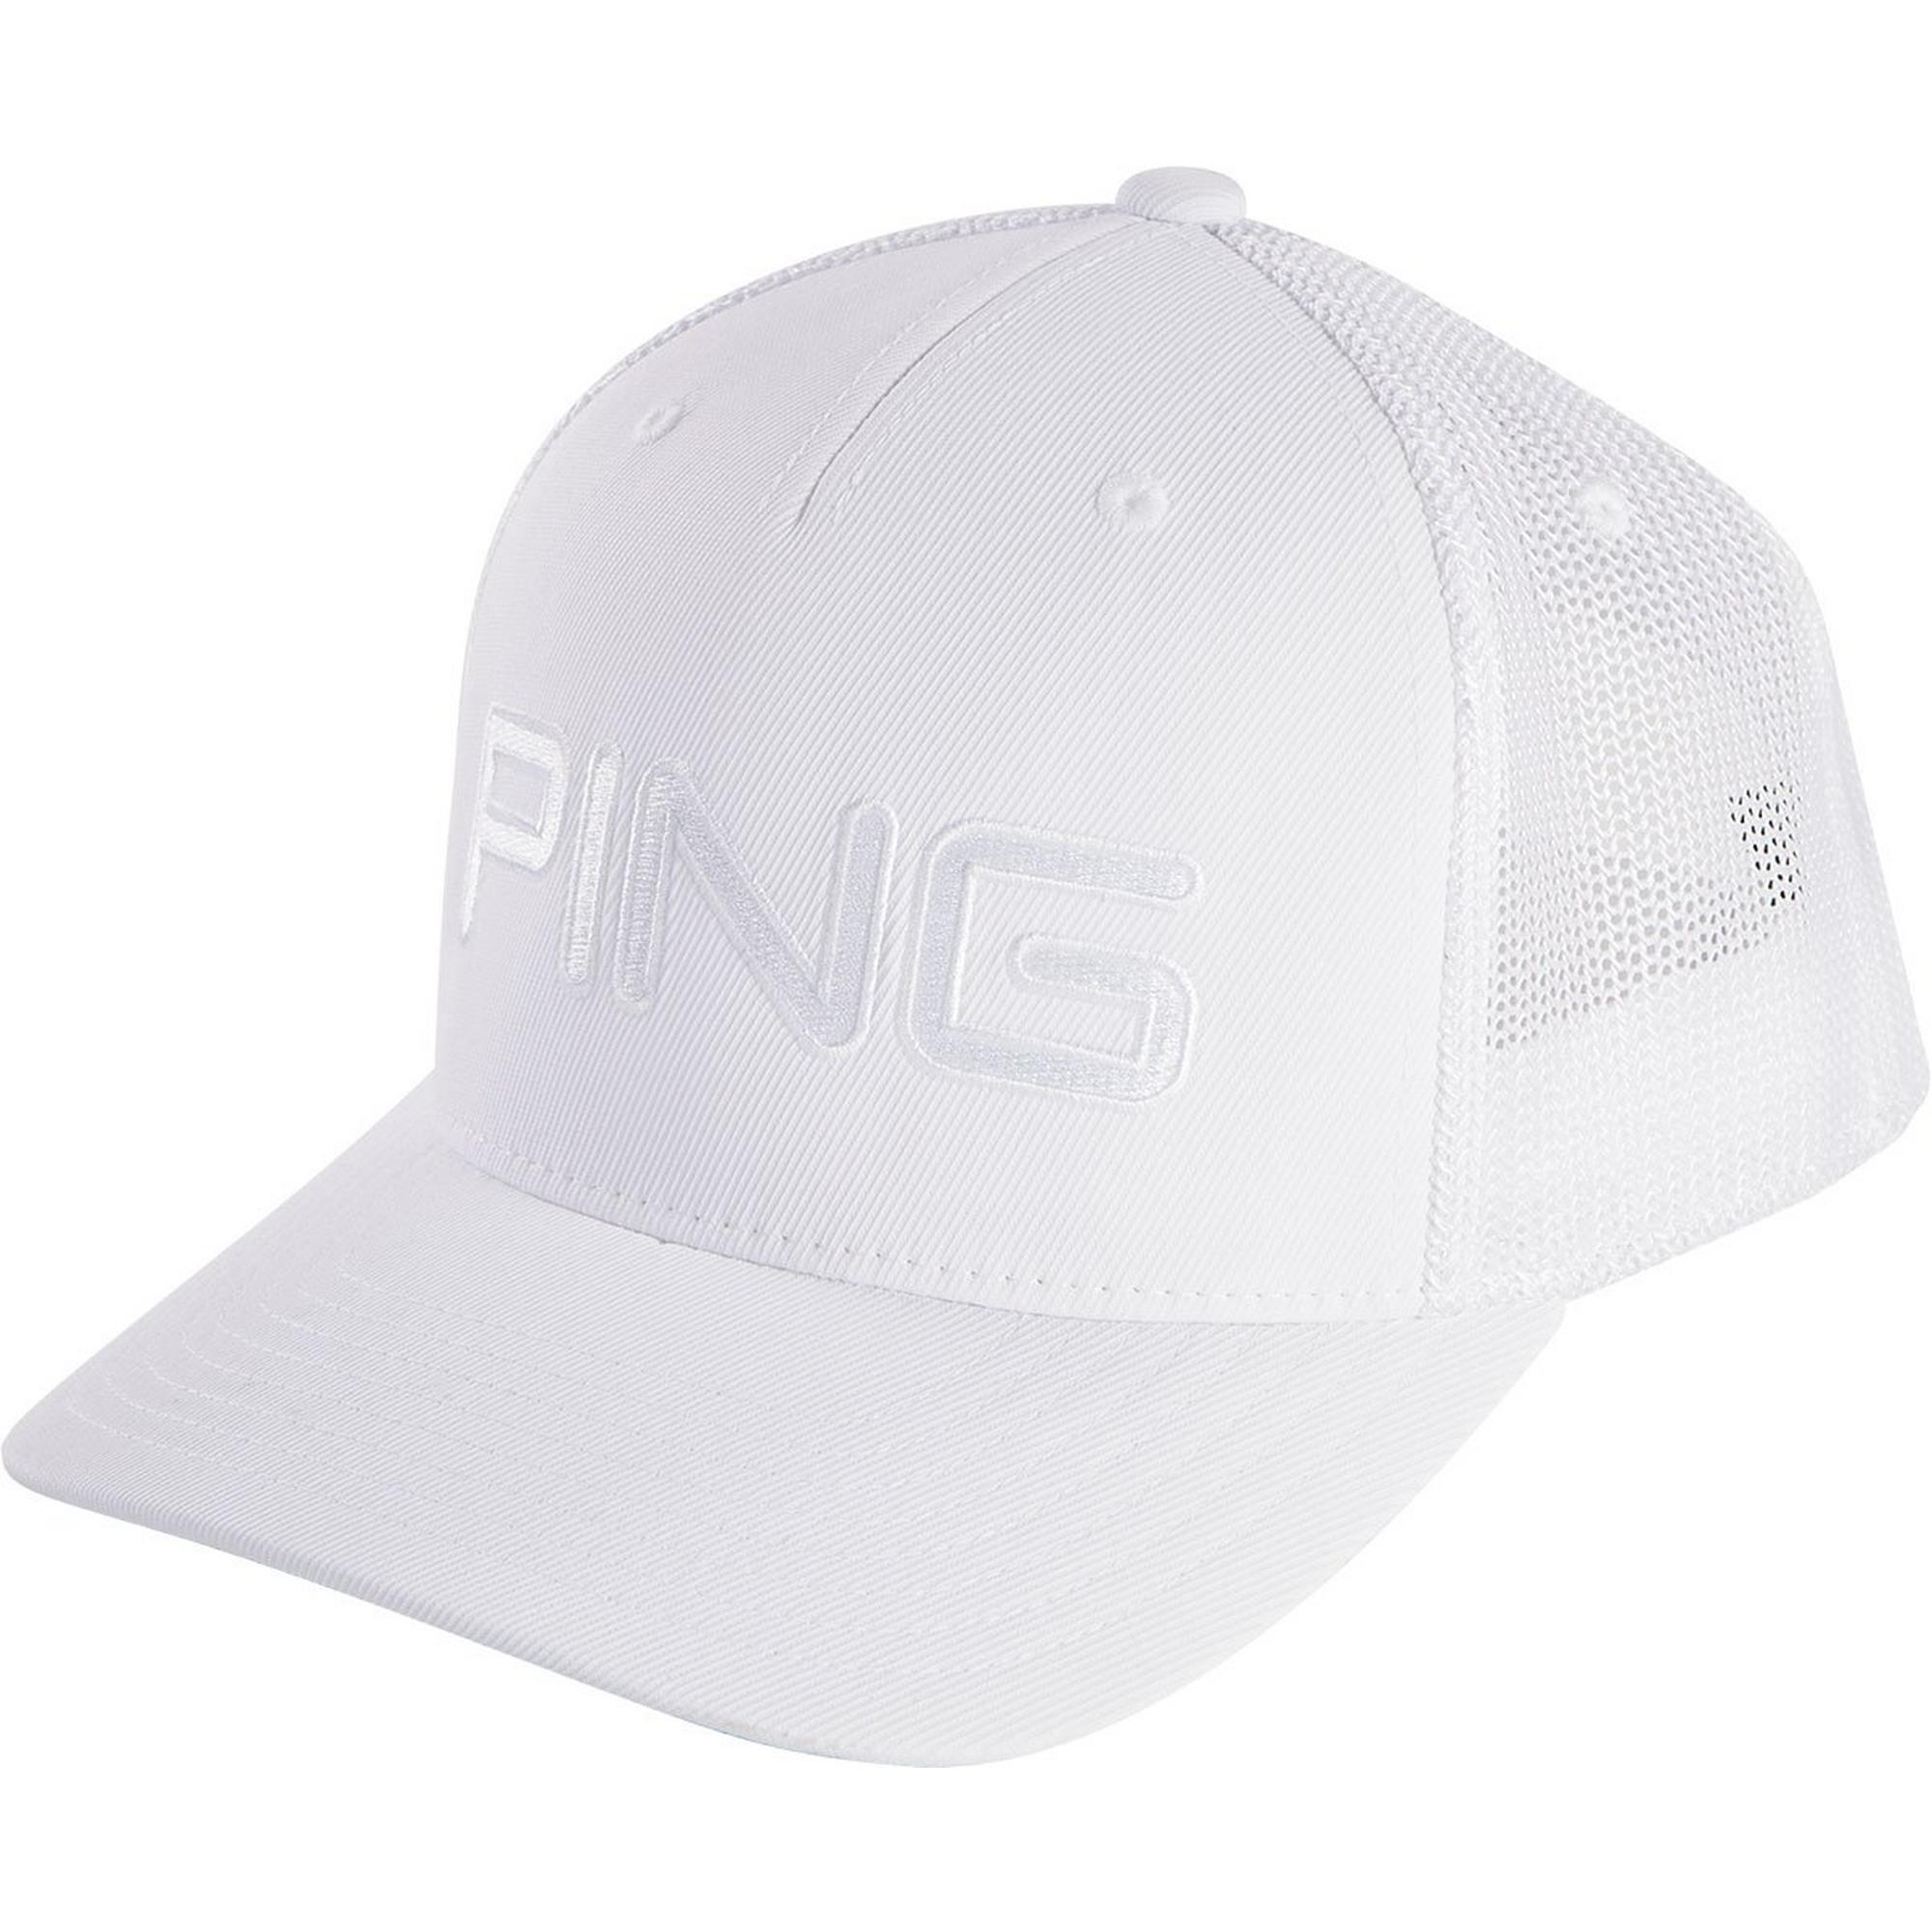 Men's Tour Mesh Cap